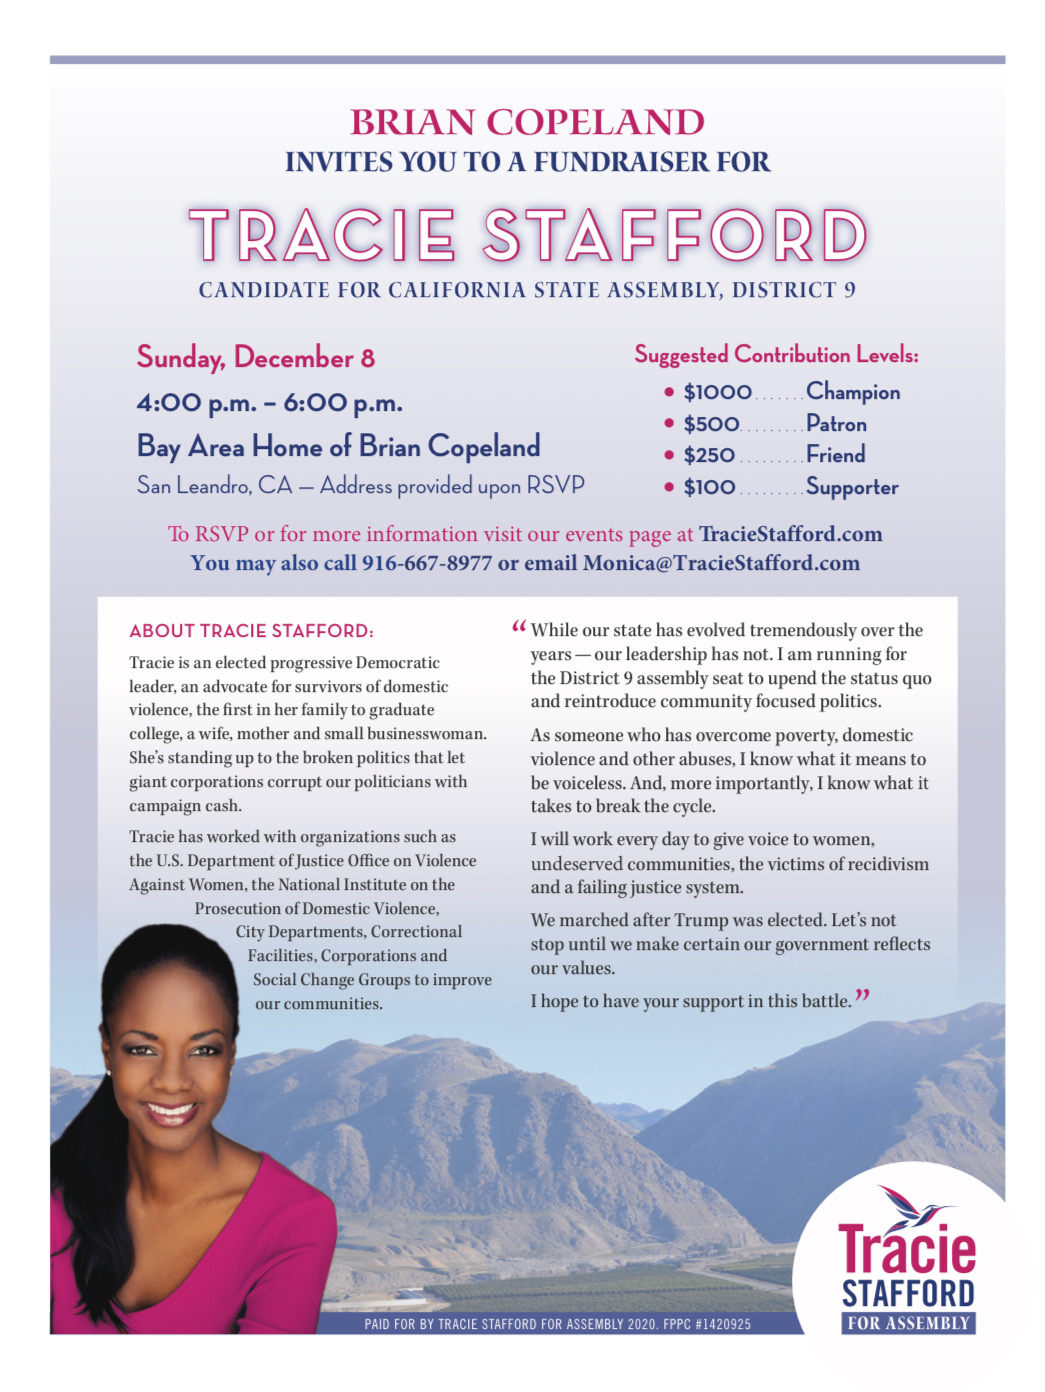 Tracie Stafford for Assembly fundraiser hosted by brian copeland